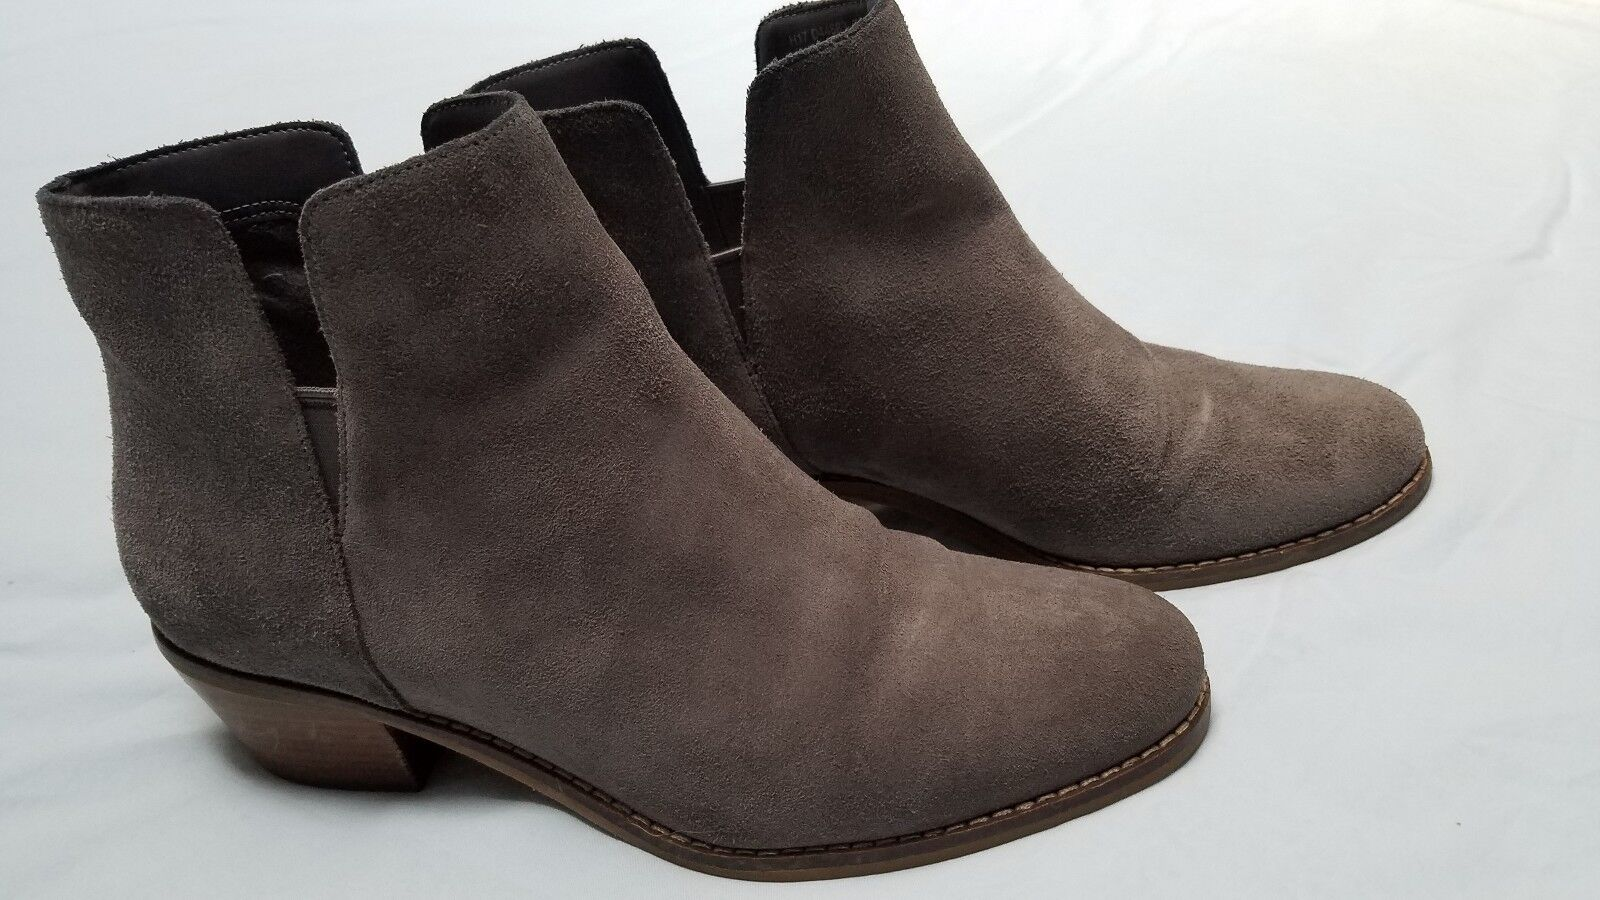 COLE HAAN SIGNATURE GRAND.OS GREY SUEDE ANKLE BOOTS, SIZE 7 1 2 B